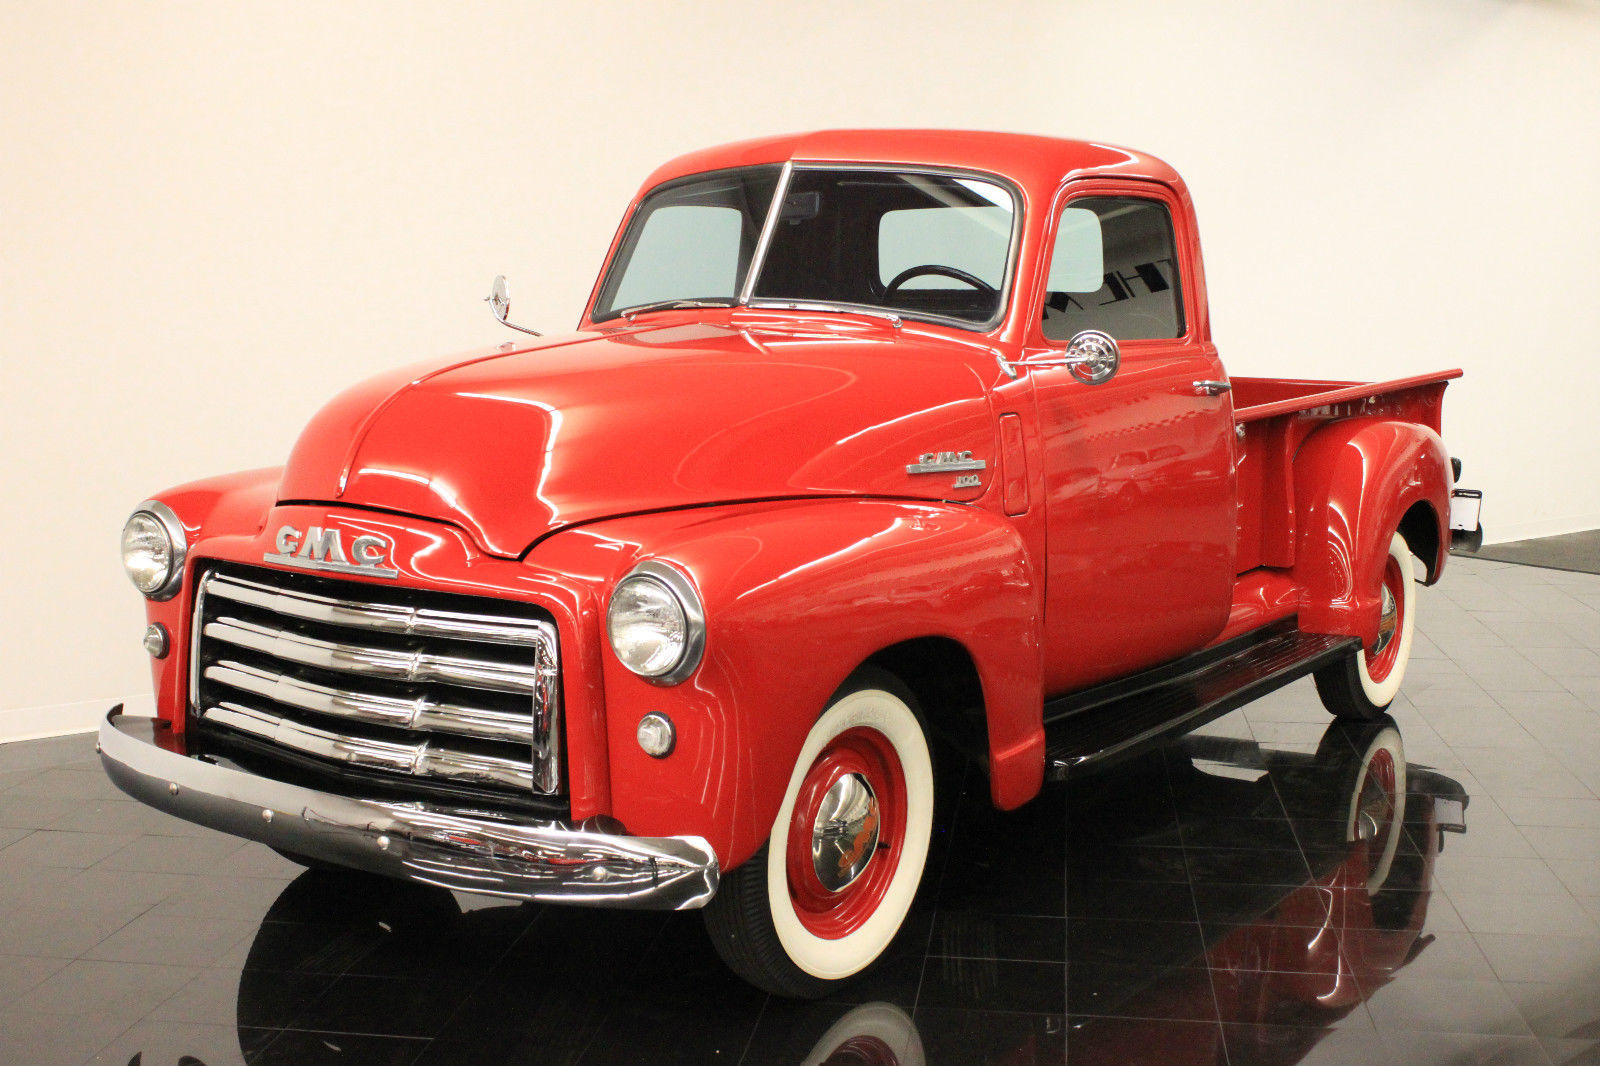 1950 Gmc 100 Pickup Parade Ready Correct 216ci Inline 6 3 Speed Column Shift Classic Gmc Other 1950 For Sale